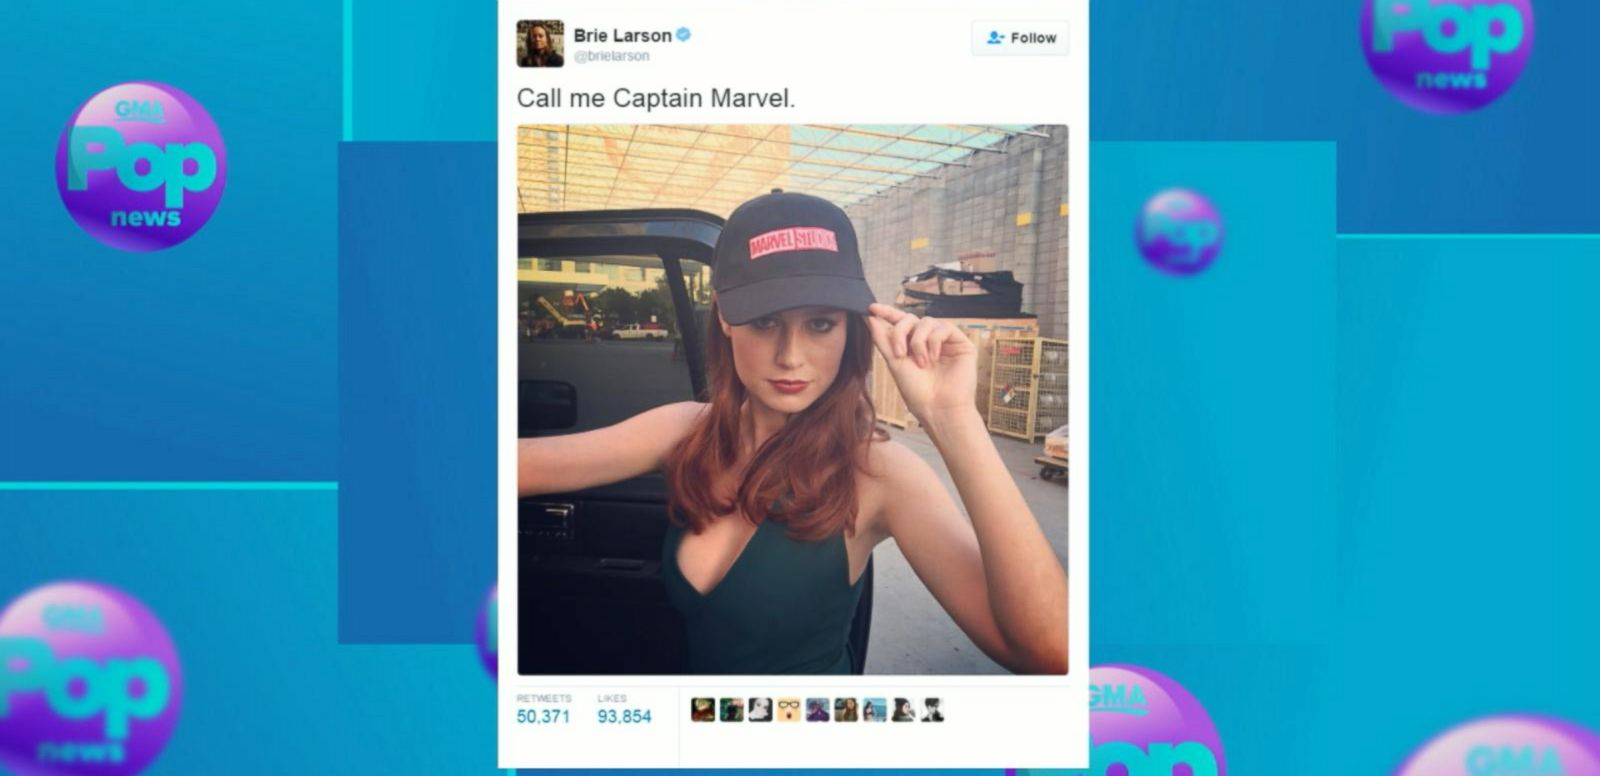 VIDEO: Brie Larson to Star in First Female-Focused Marvel Film